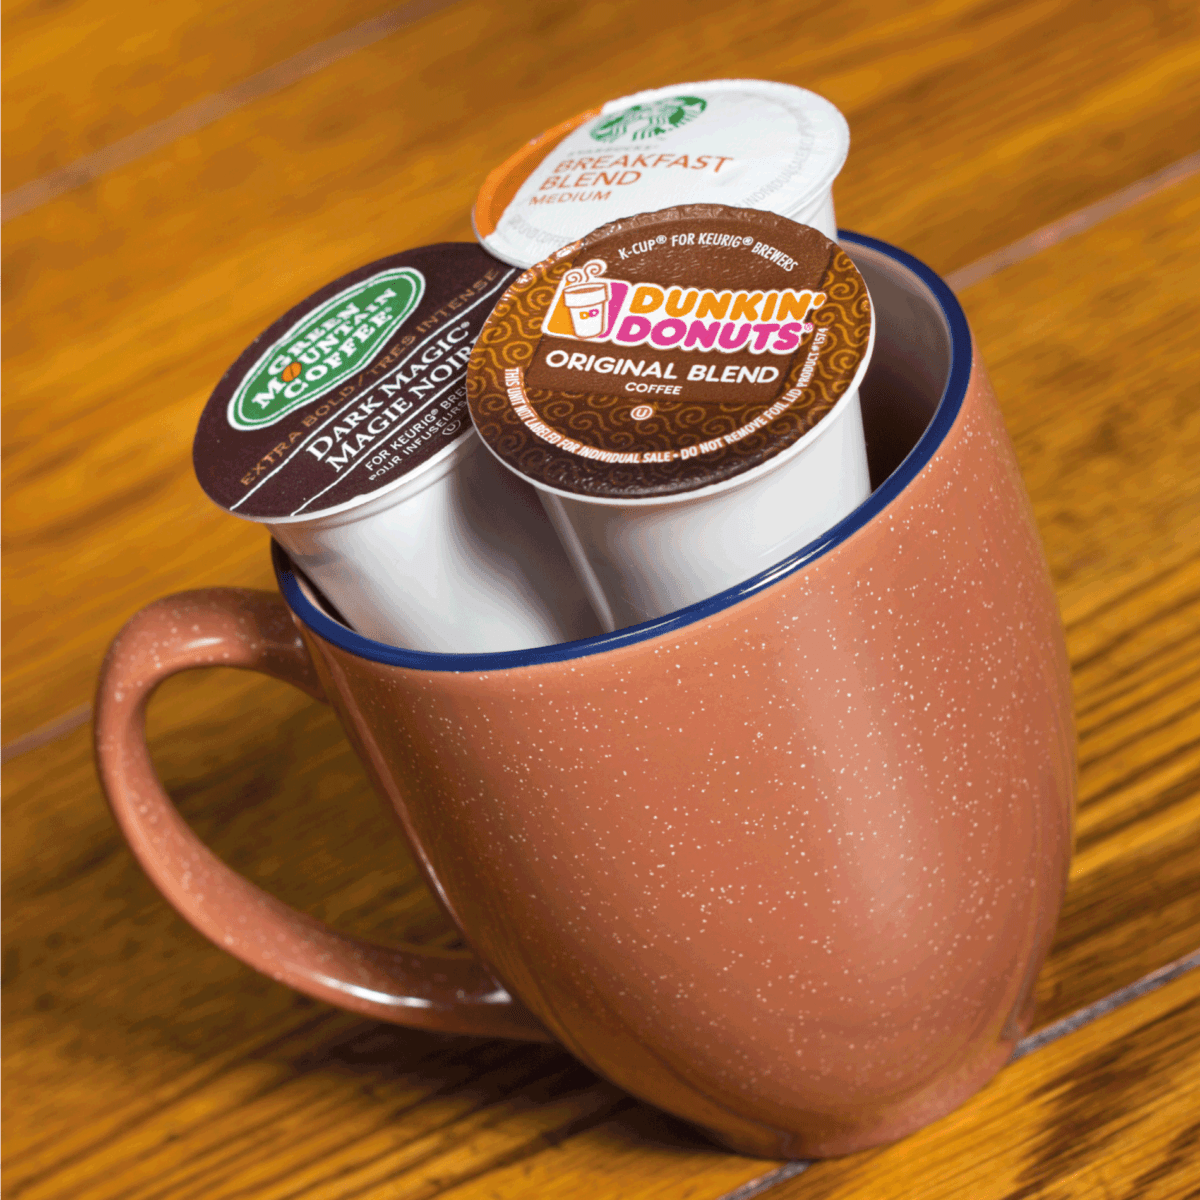 k-cups inside a large coffee mug on a wooden table